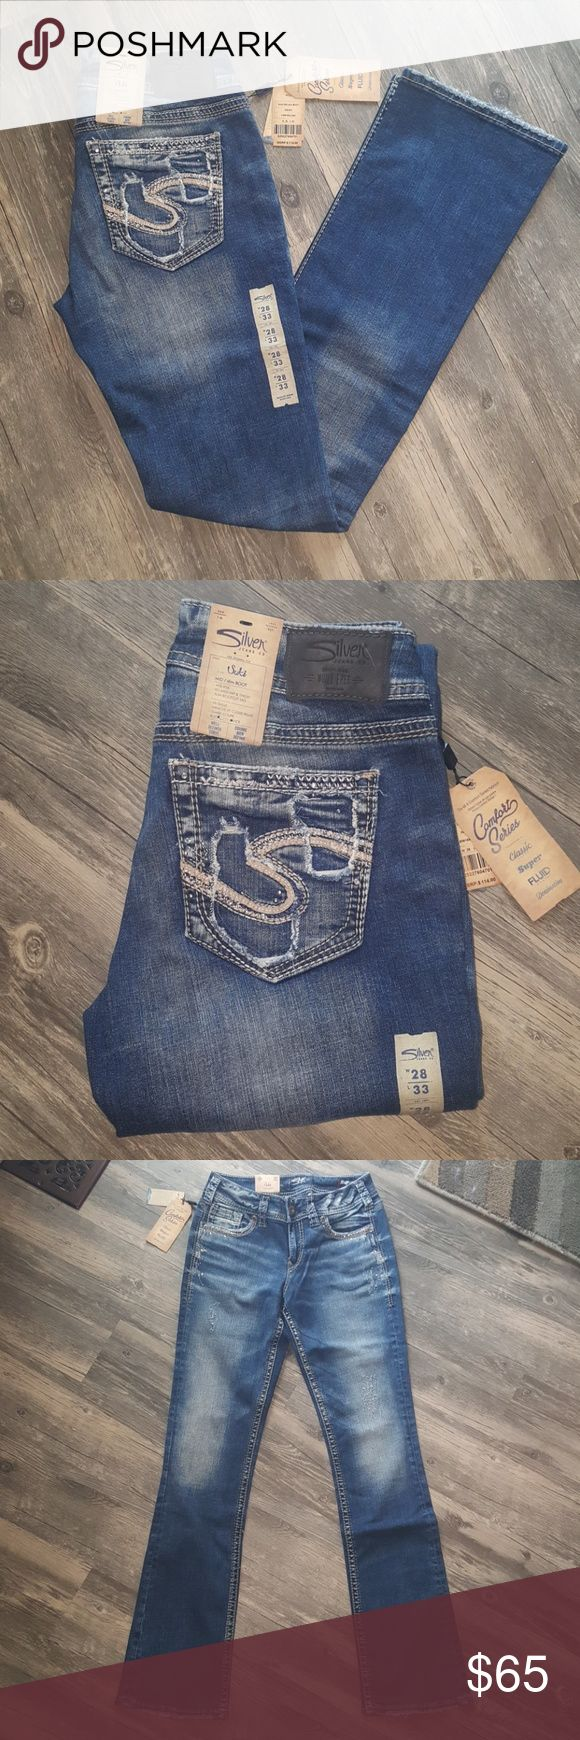 Silver Jeans Suki Mid Slim Bootcut ● 28W/33L ● Color: Indigo  ● Mid Rise Super Stretch ● Relaxed Hip & Thigh, Well Defined       Curve ● Slim Bootcut Leg ● Embellished Front & Back Pockets   Super cute embellishments on front & back pockets! Silver Jeans Jeans Boot Cut